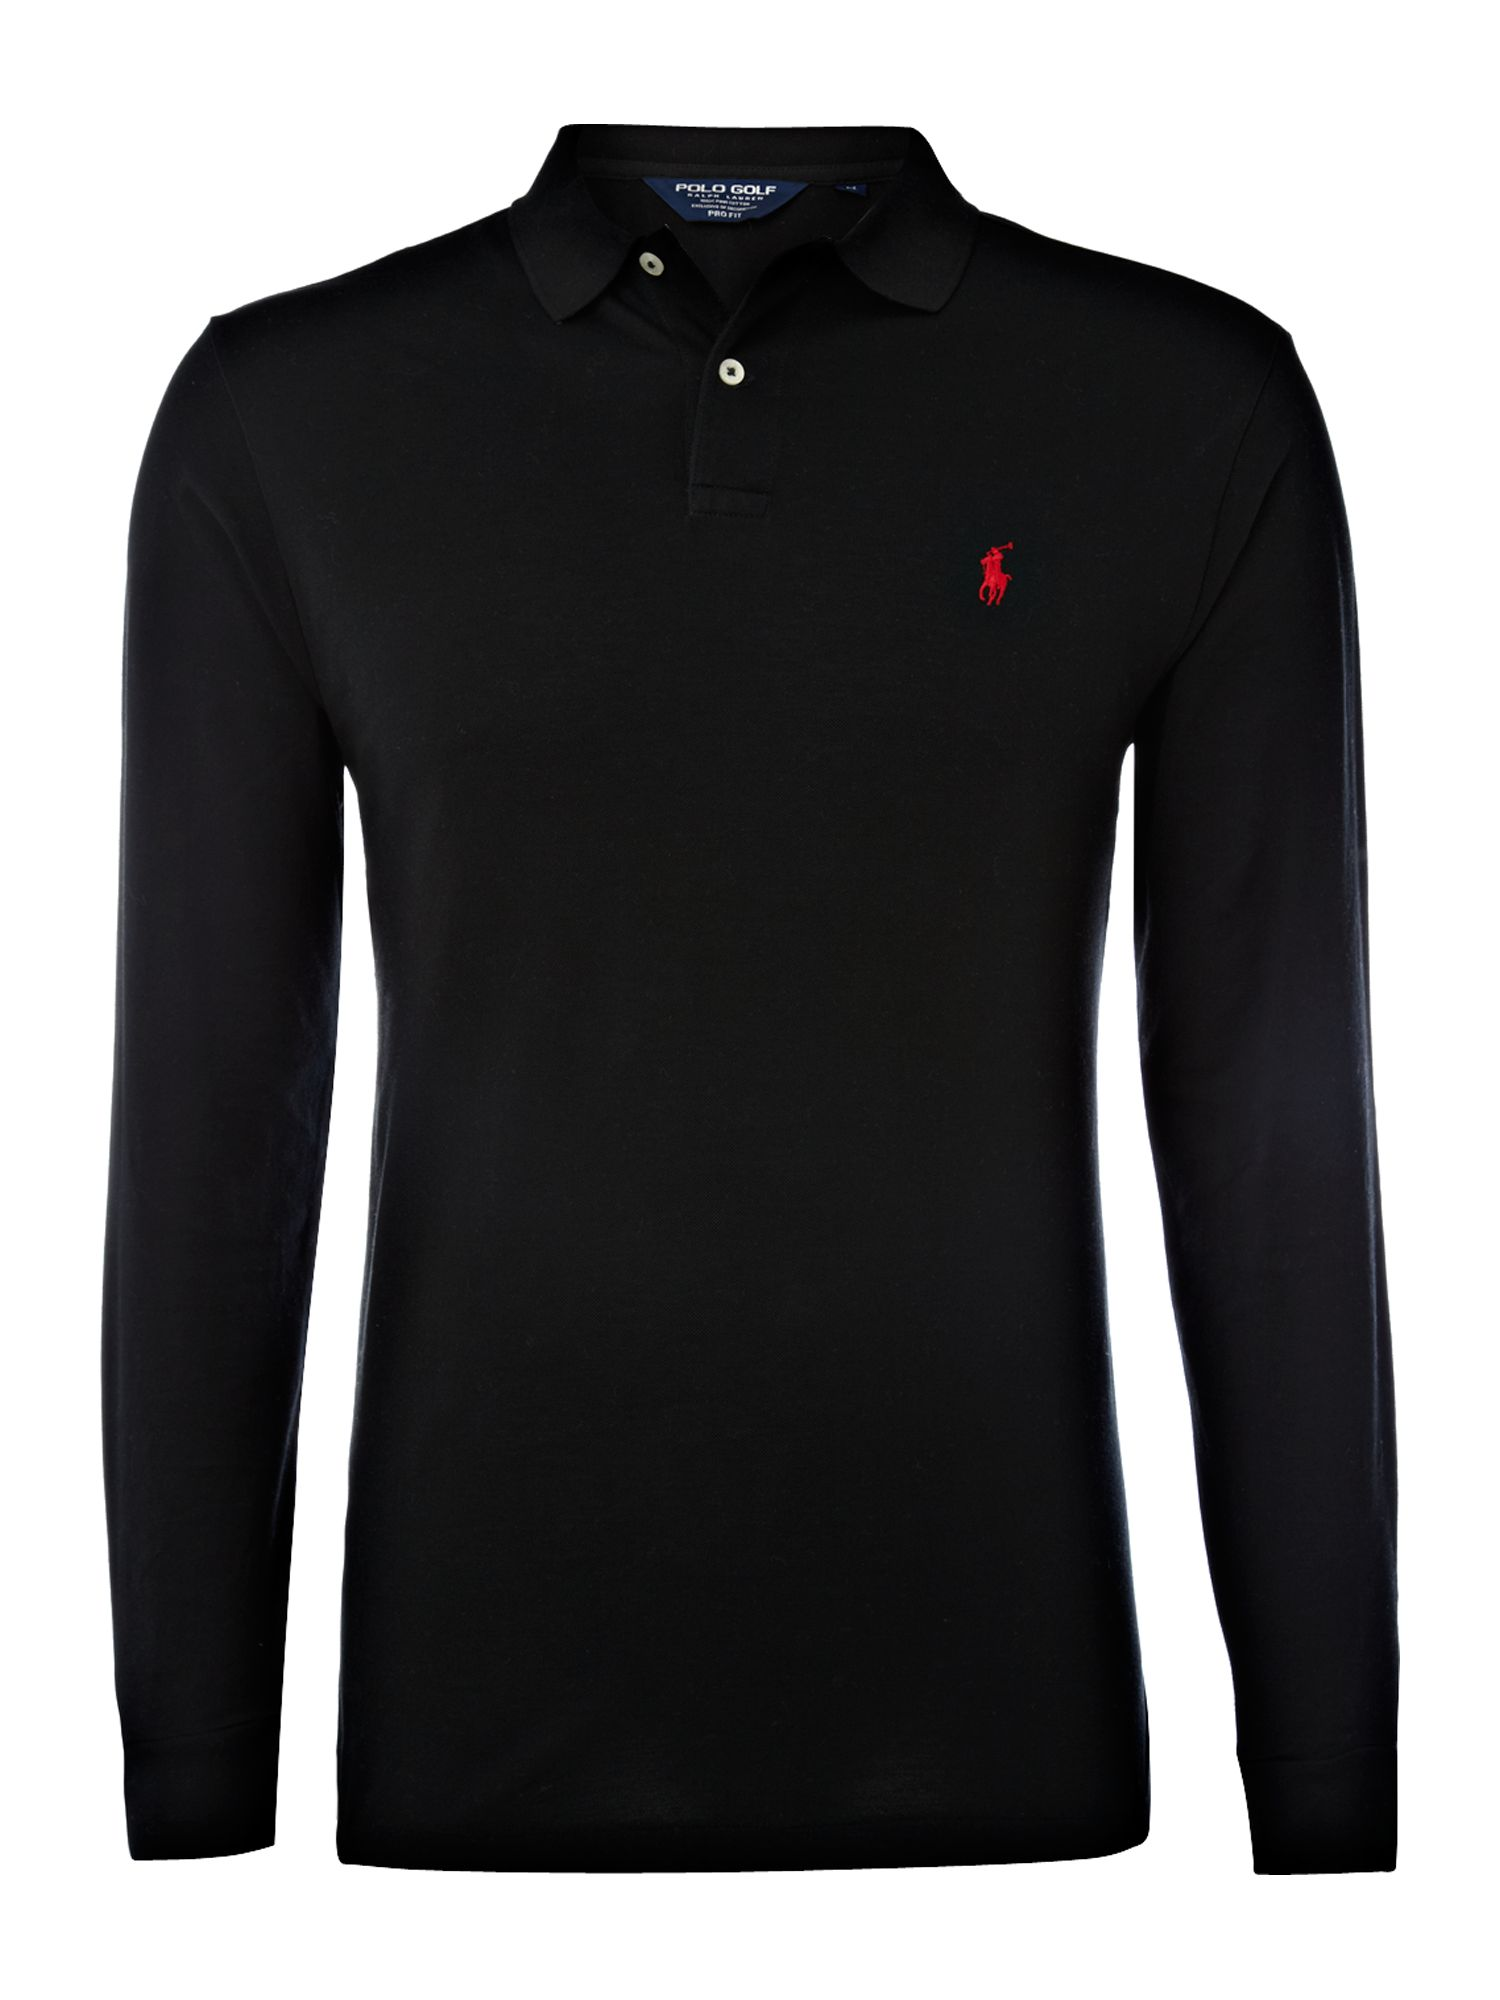 Ralph lauren golf long sleeve pro fit polo shirt in black for Black golf polo shirt